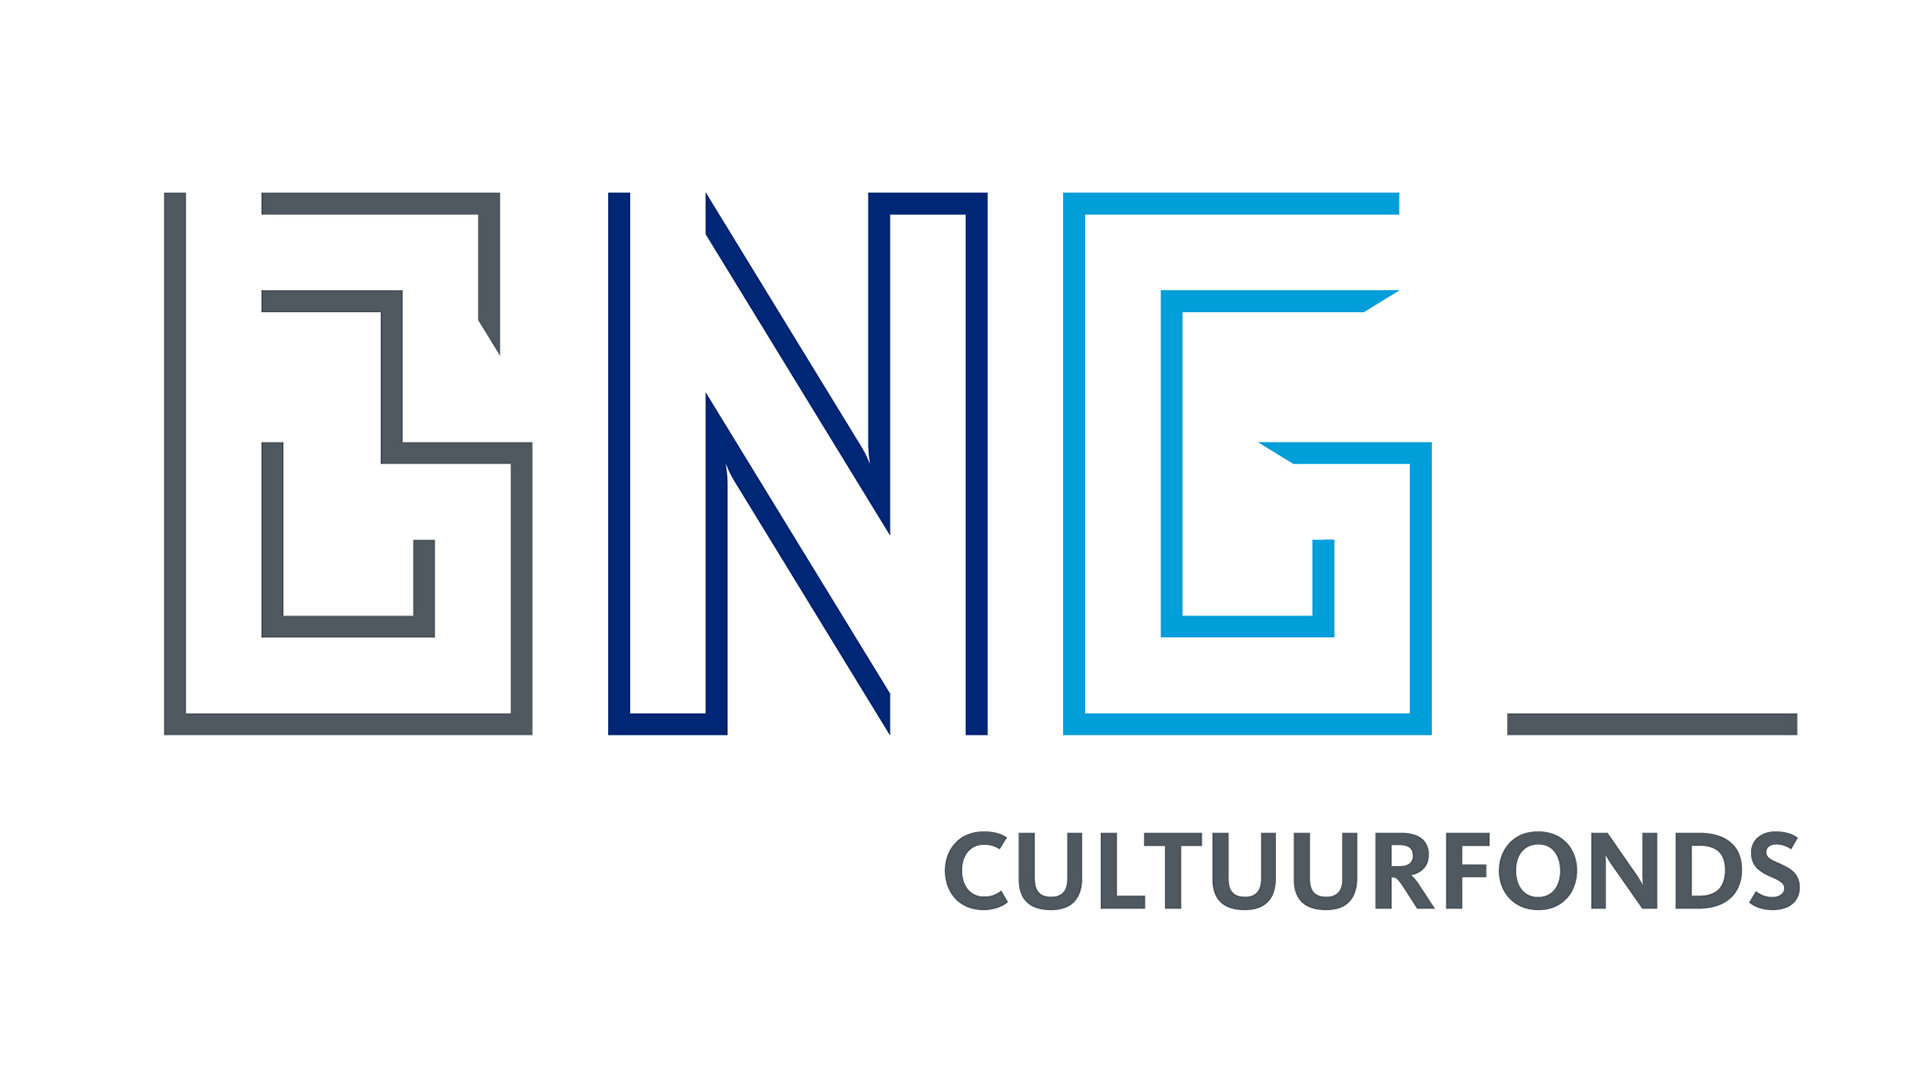 bng_cultuurfonds.png